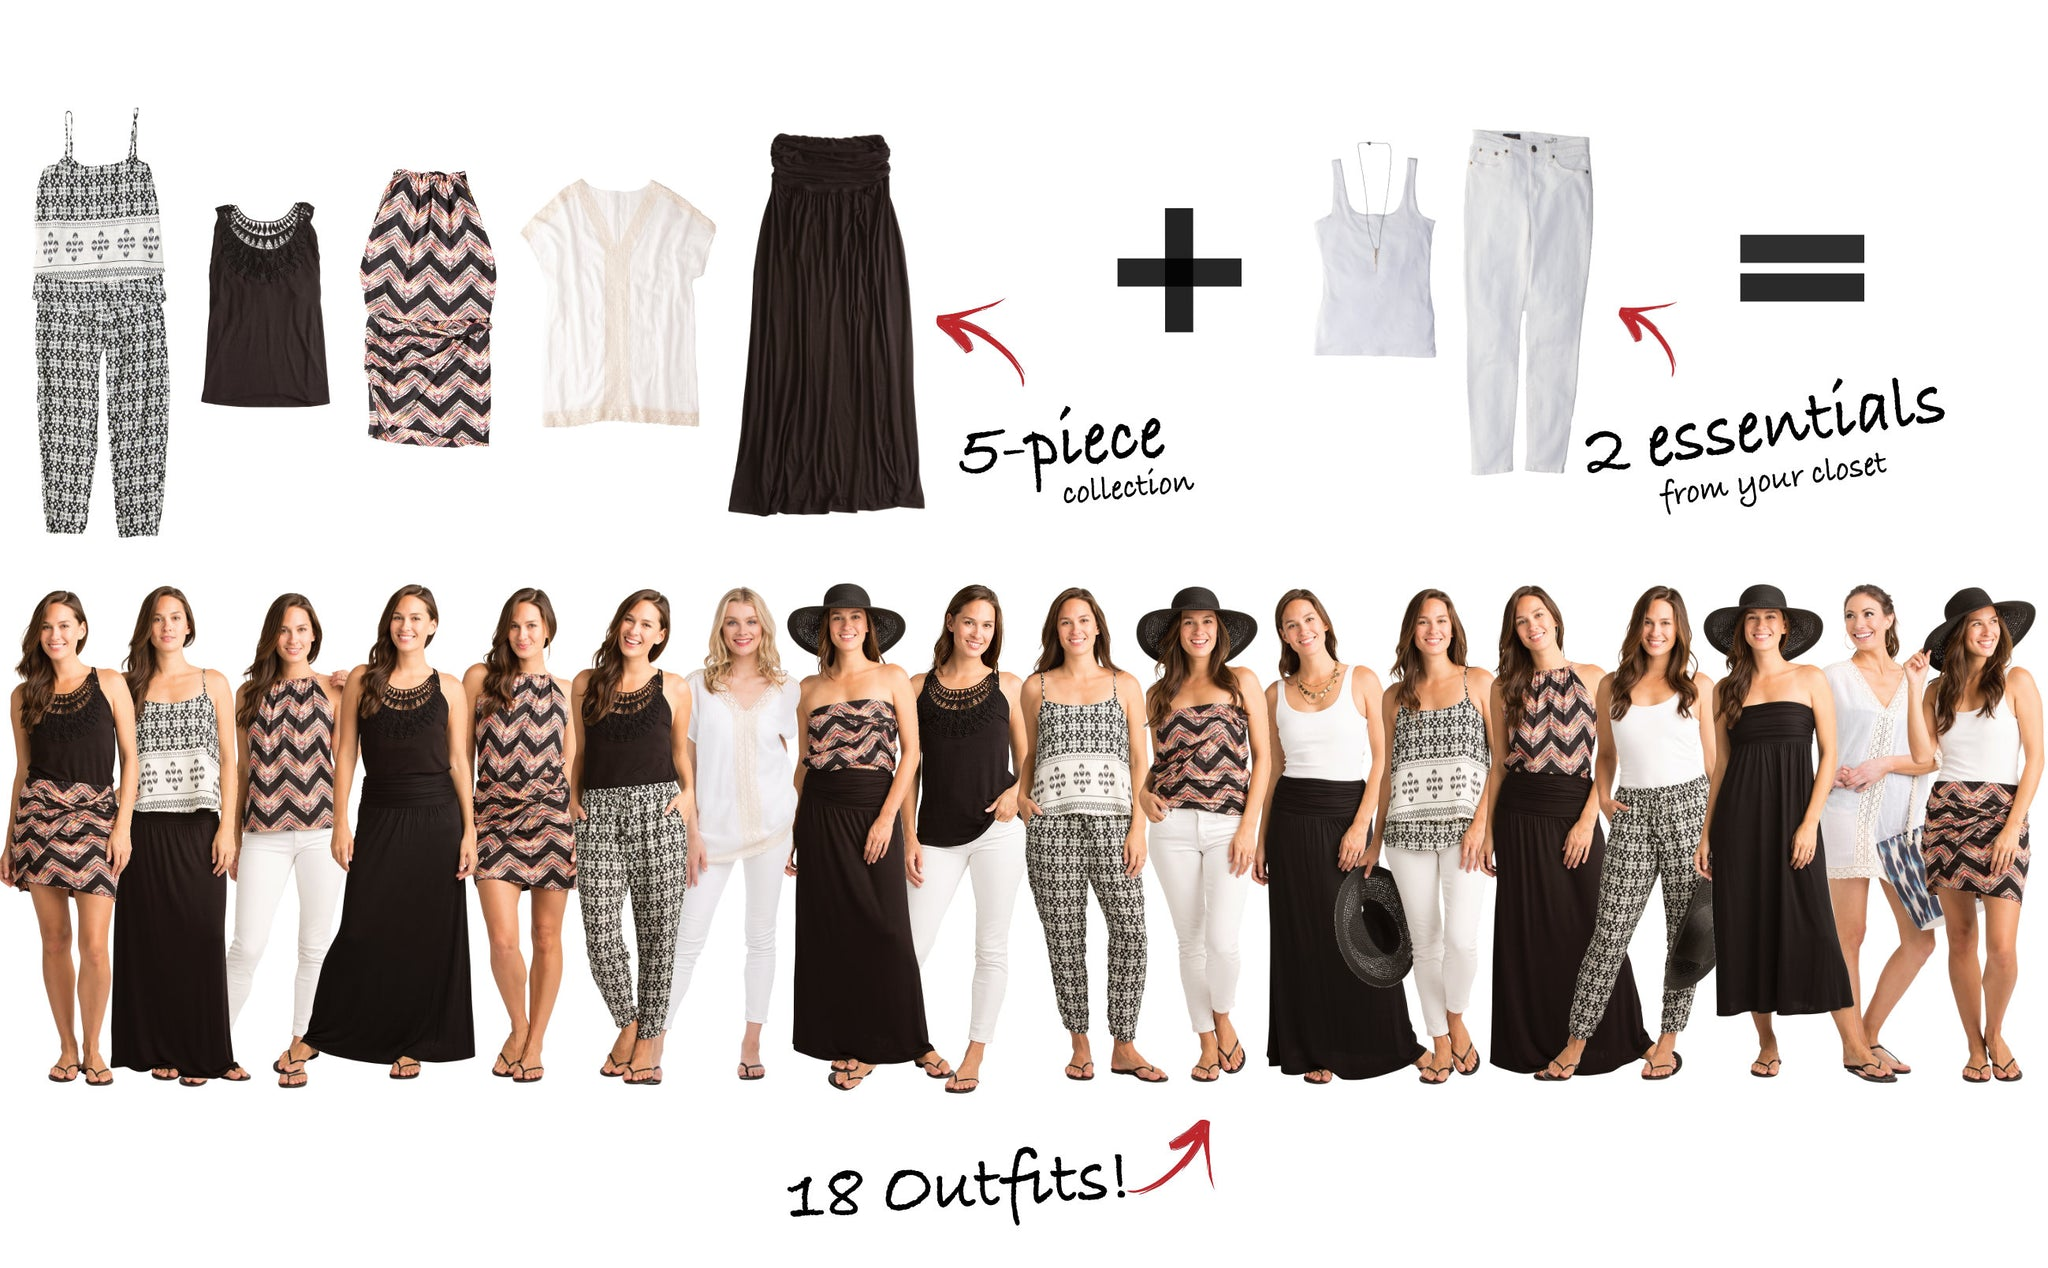 Palm Desert Collection: 5 Items = 18 Outfits